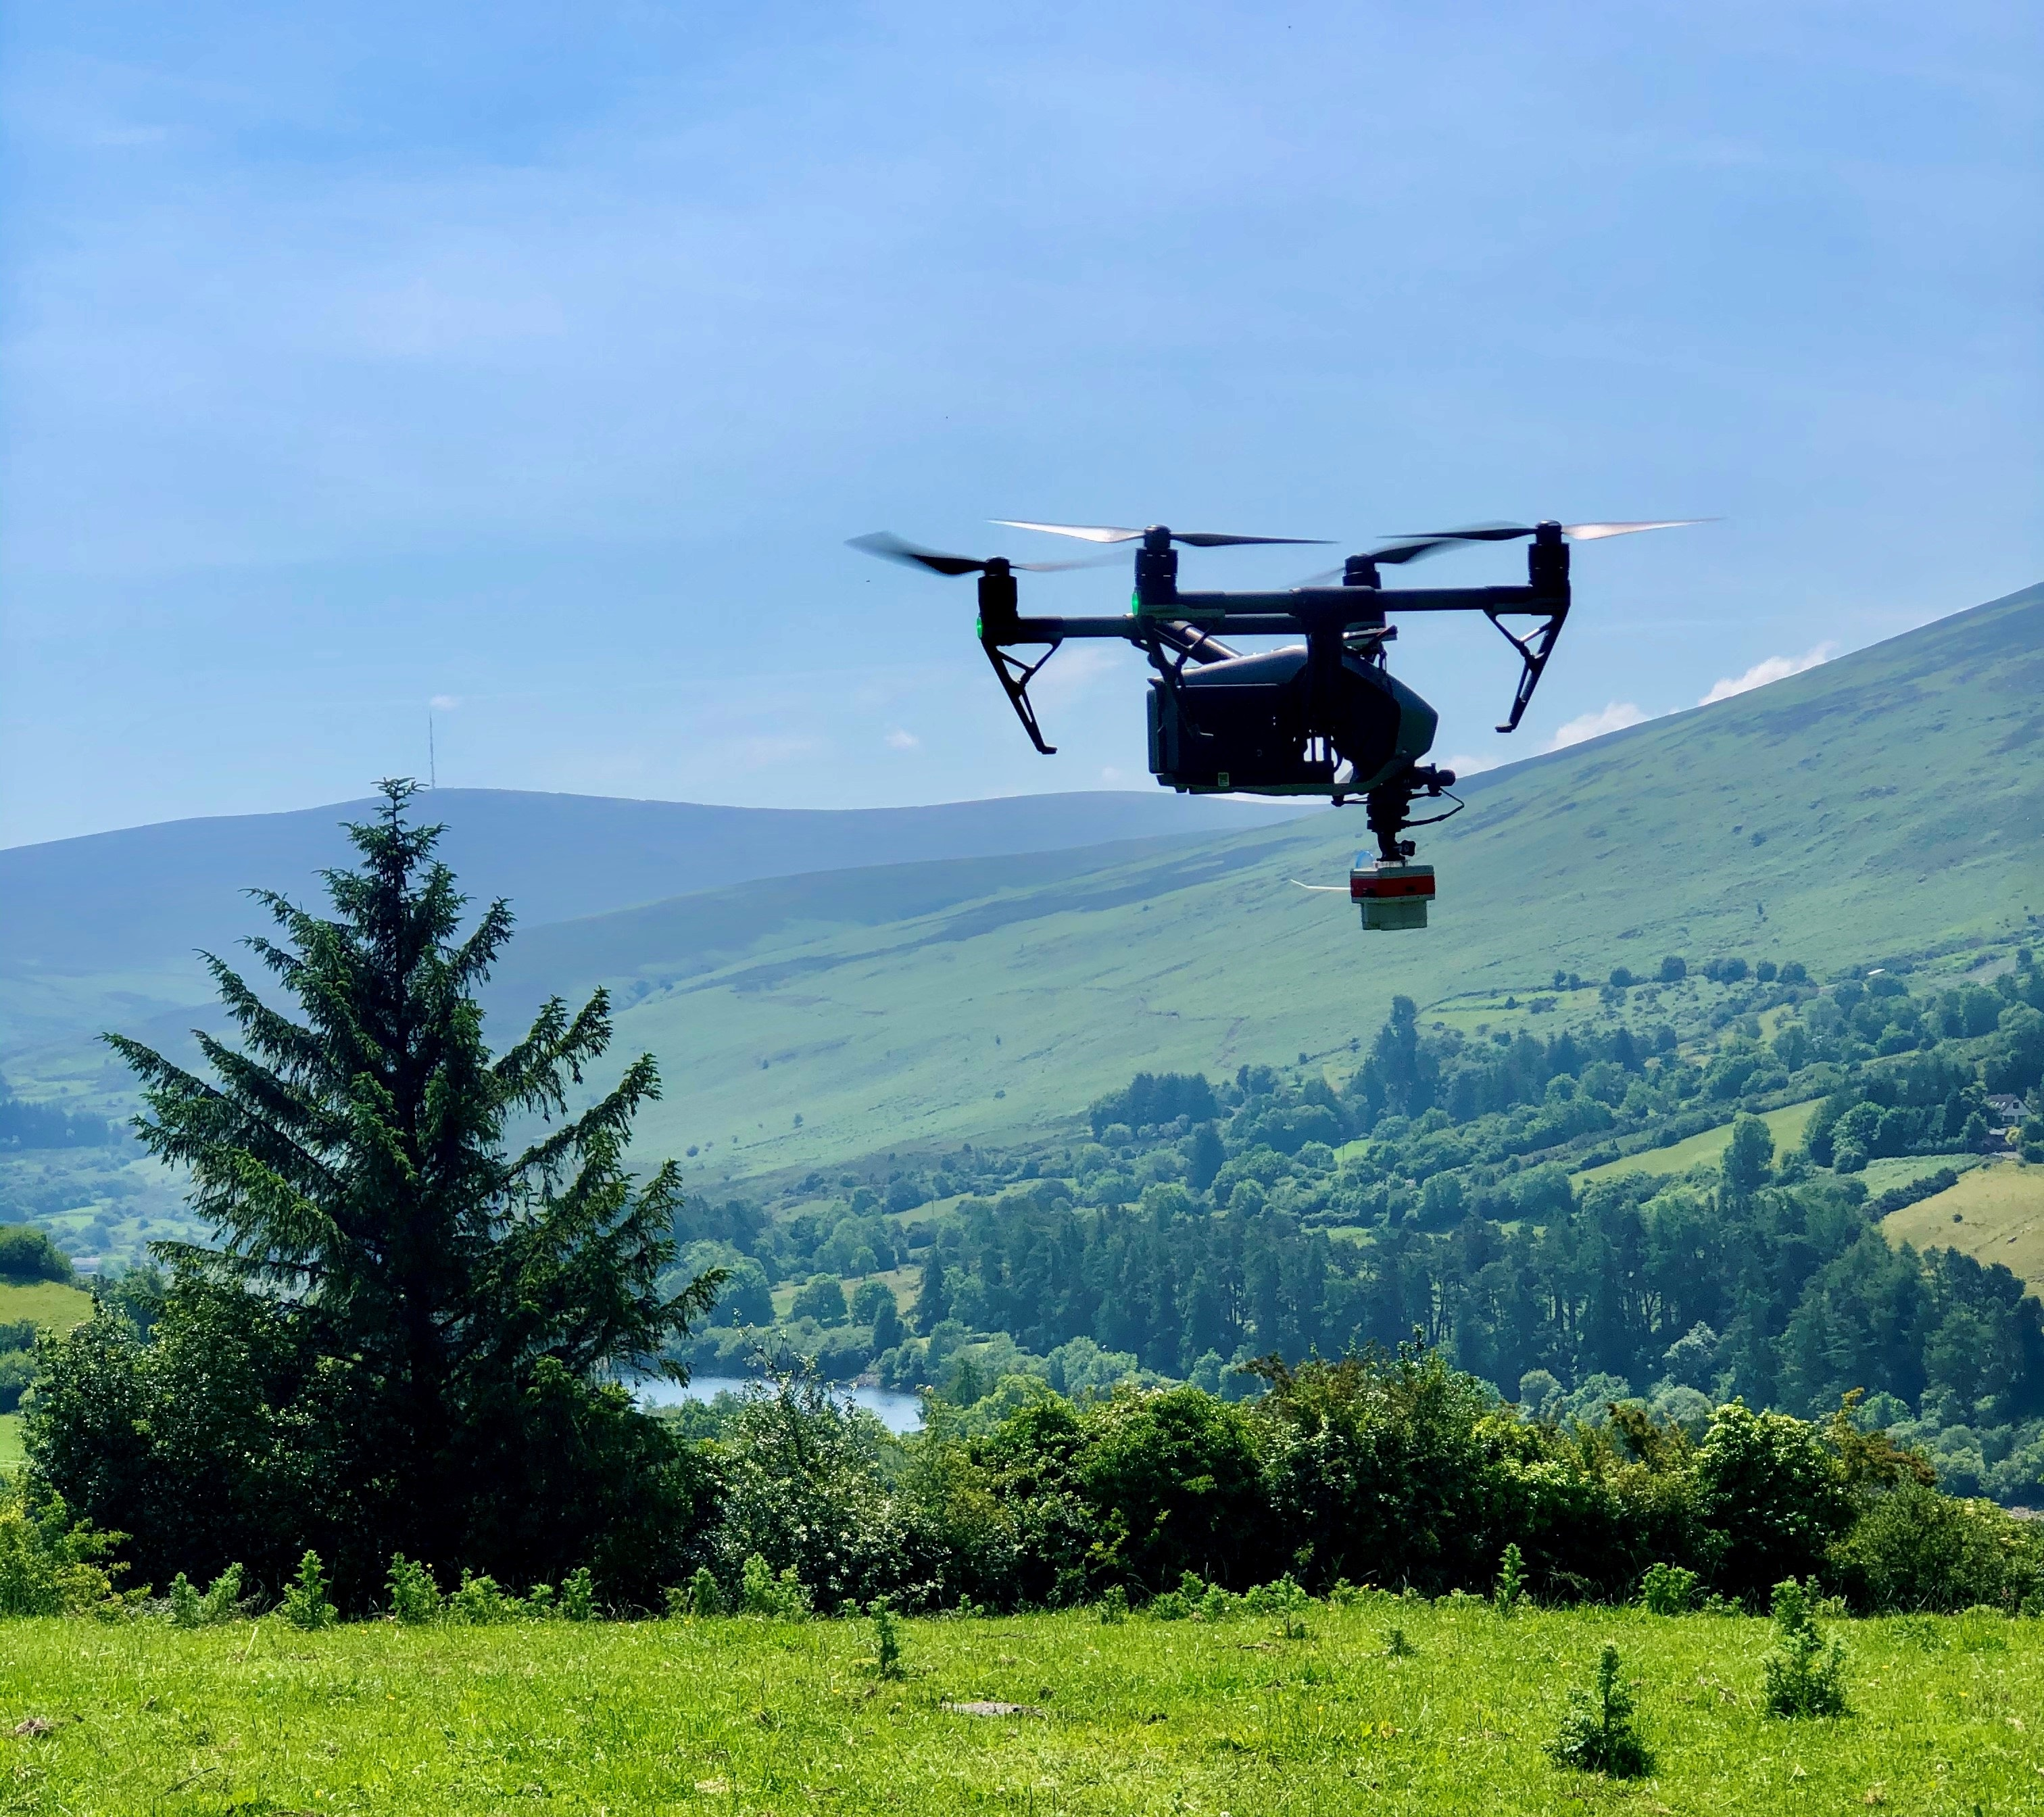 Maynooth University's drone sensor equipment in action